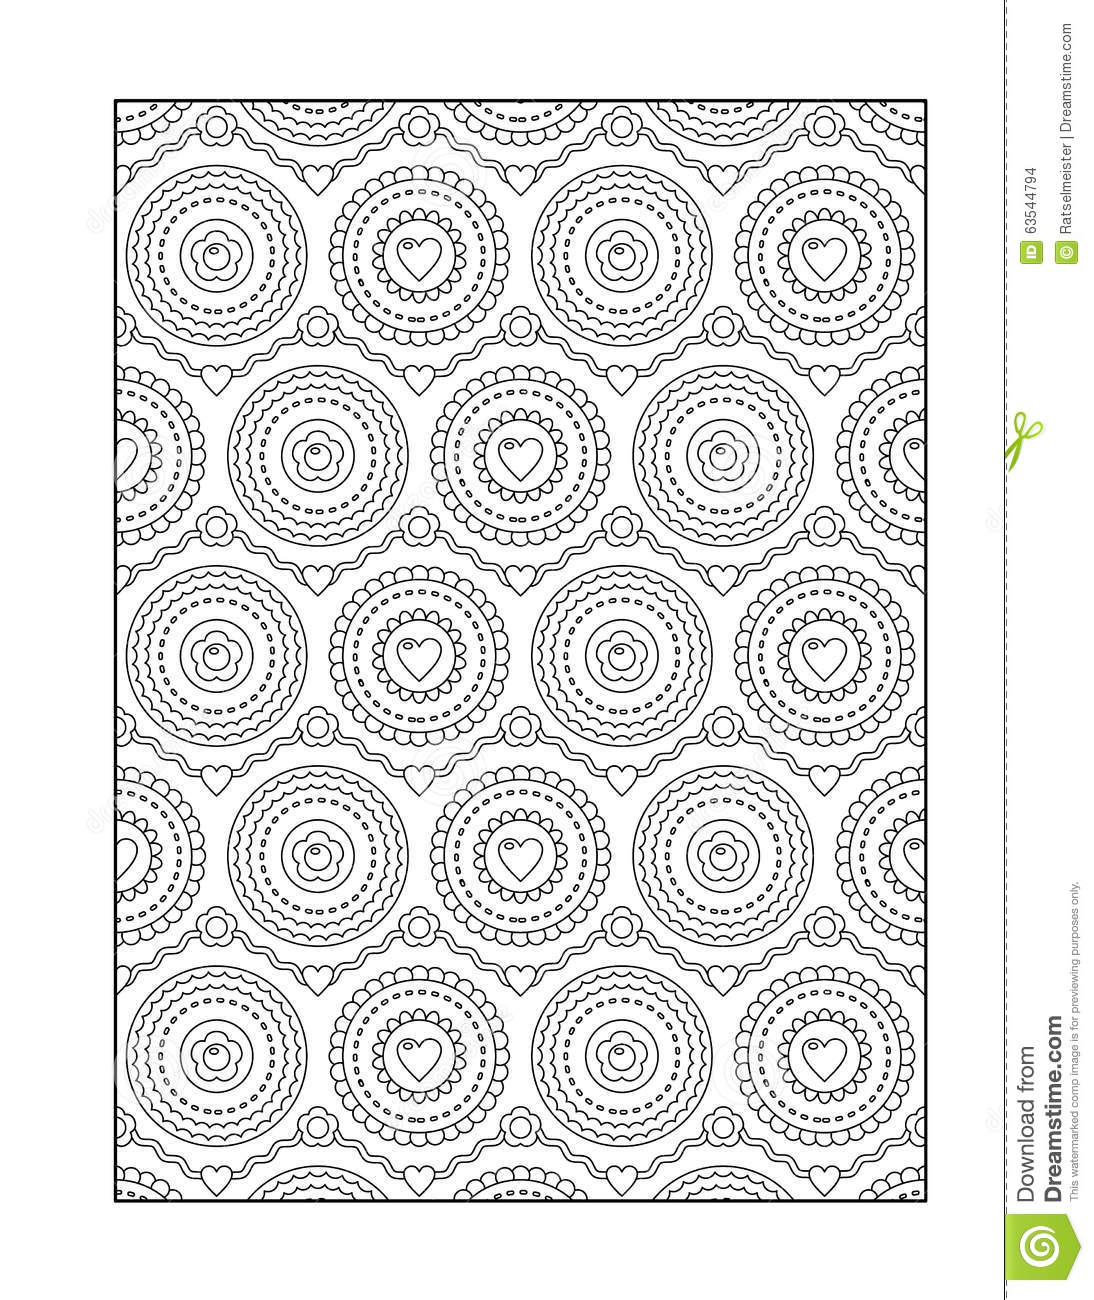 Coloring Pages Background Coloring Pages coloring page for adults or black and white ornamental background background